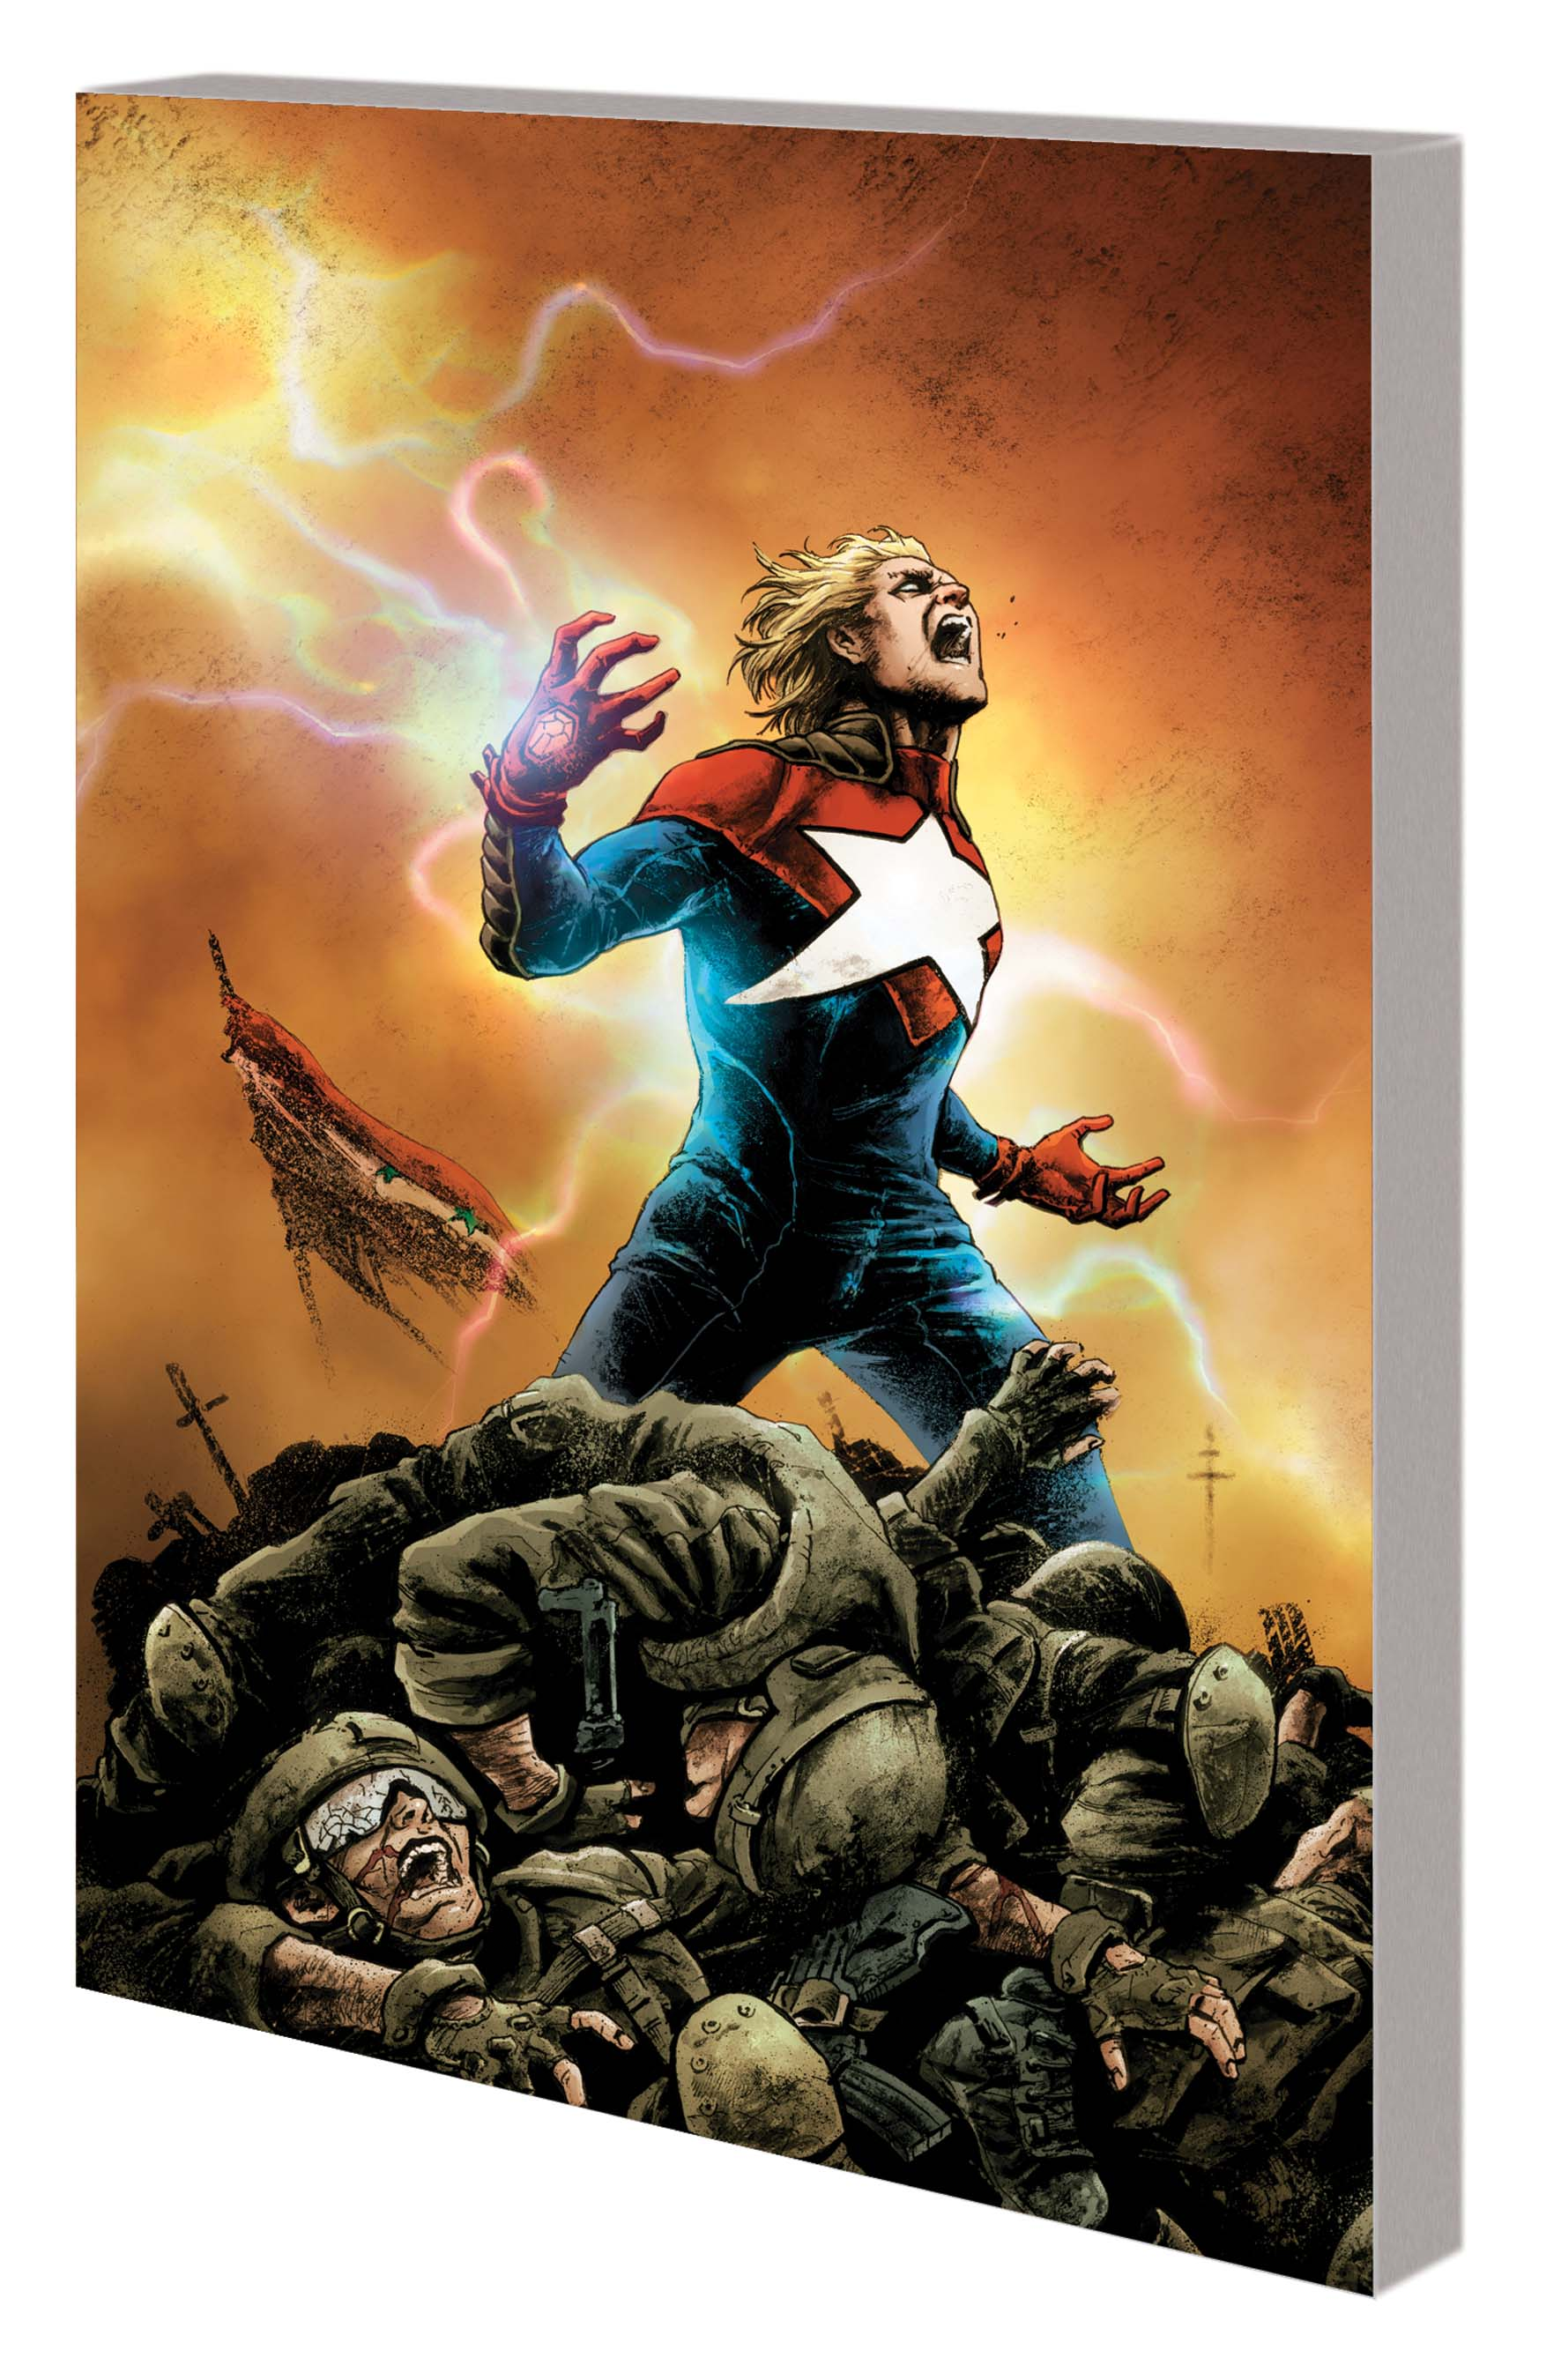 SUPREME POWER: GODS AND SOLDIERS TPB (Trade Paperback)